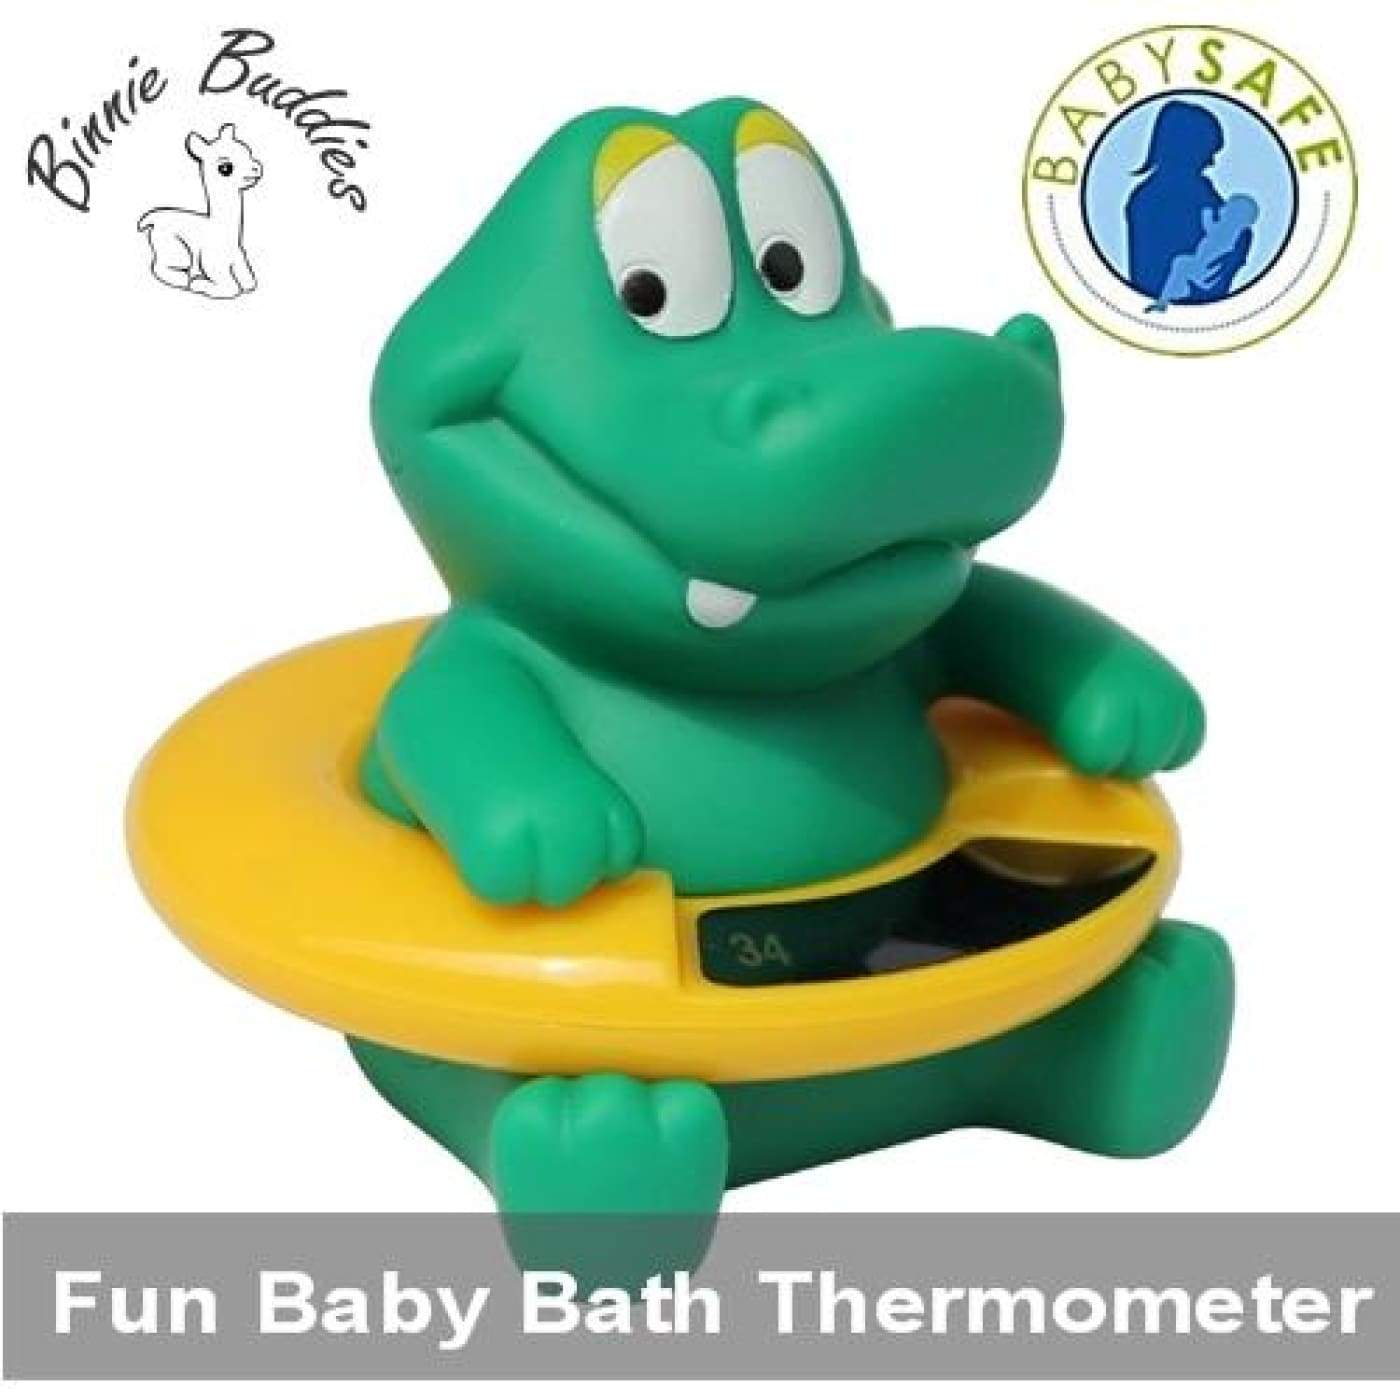 Binnie Bath Thermometer - Crockie - HEALTH & HOME SAFETY - THERMOMETERS/MEDICINAL